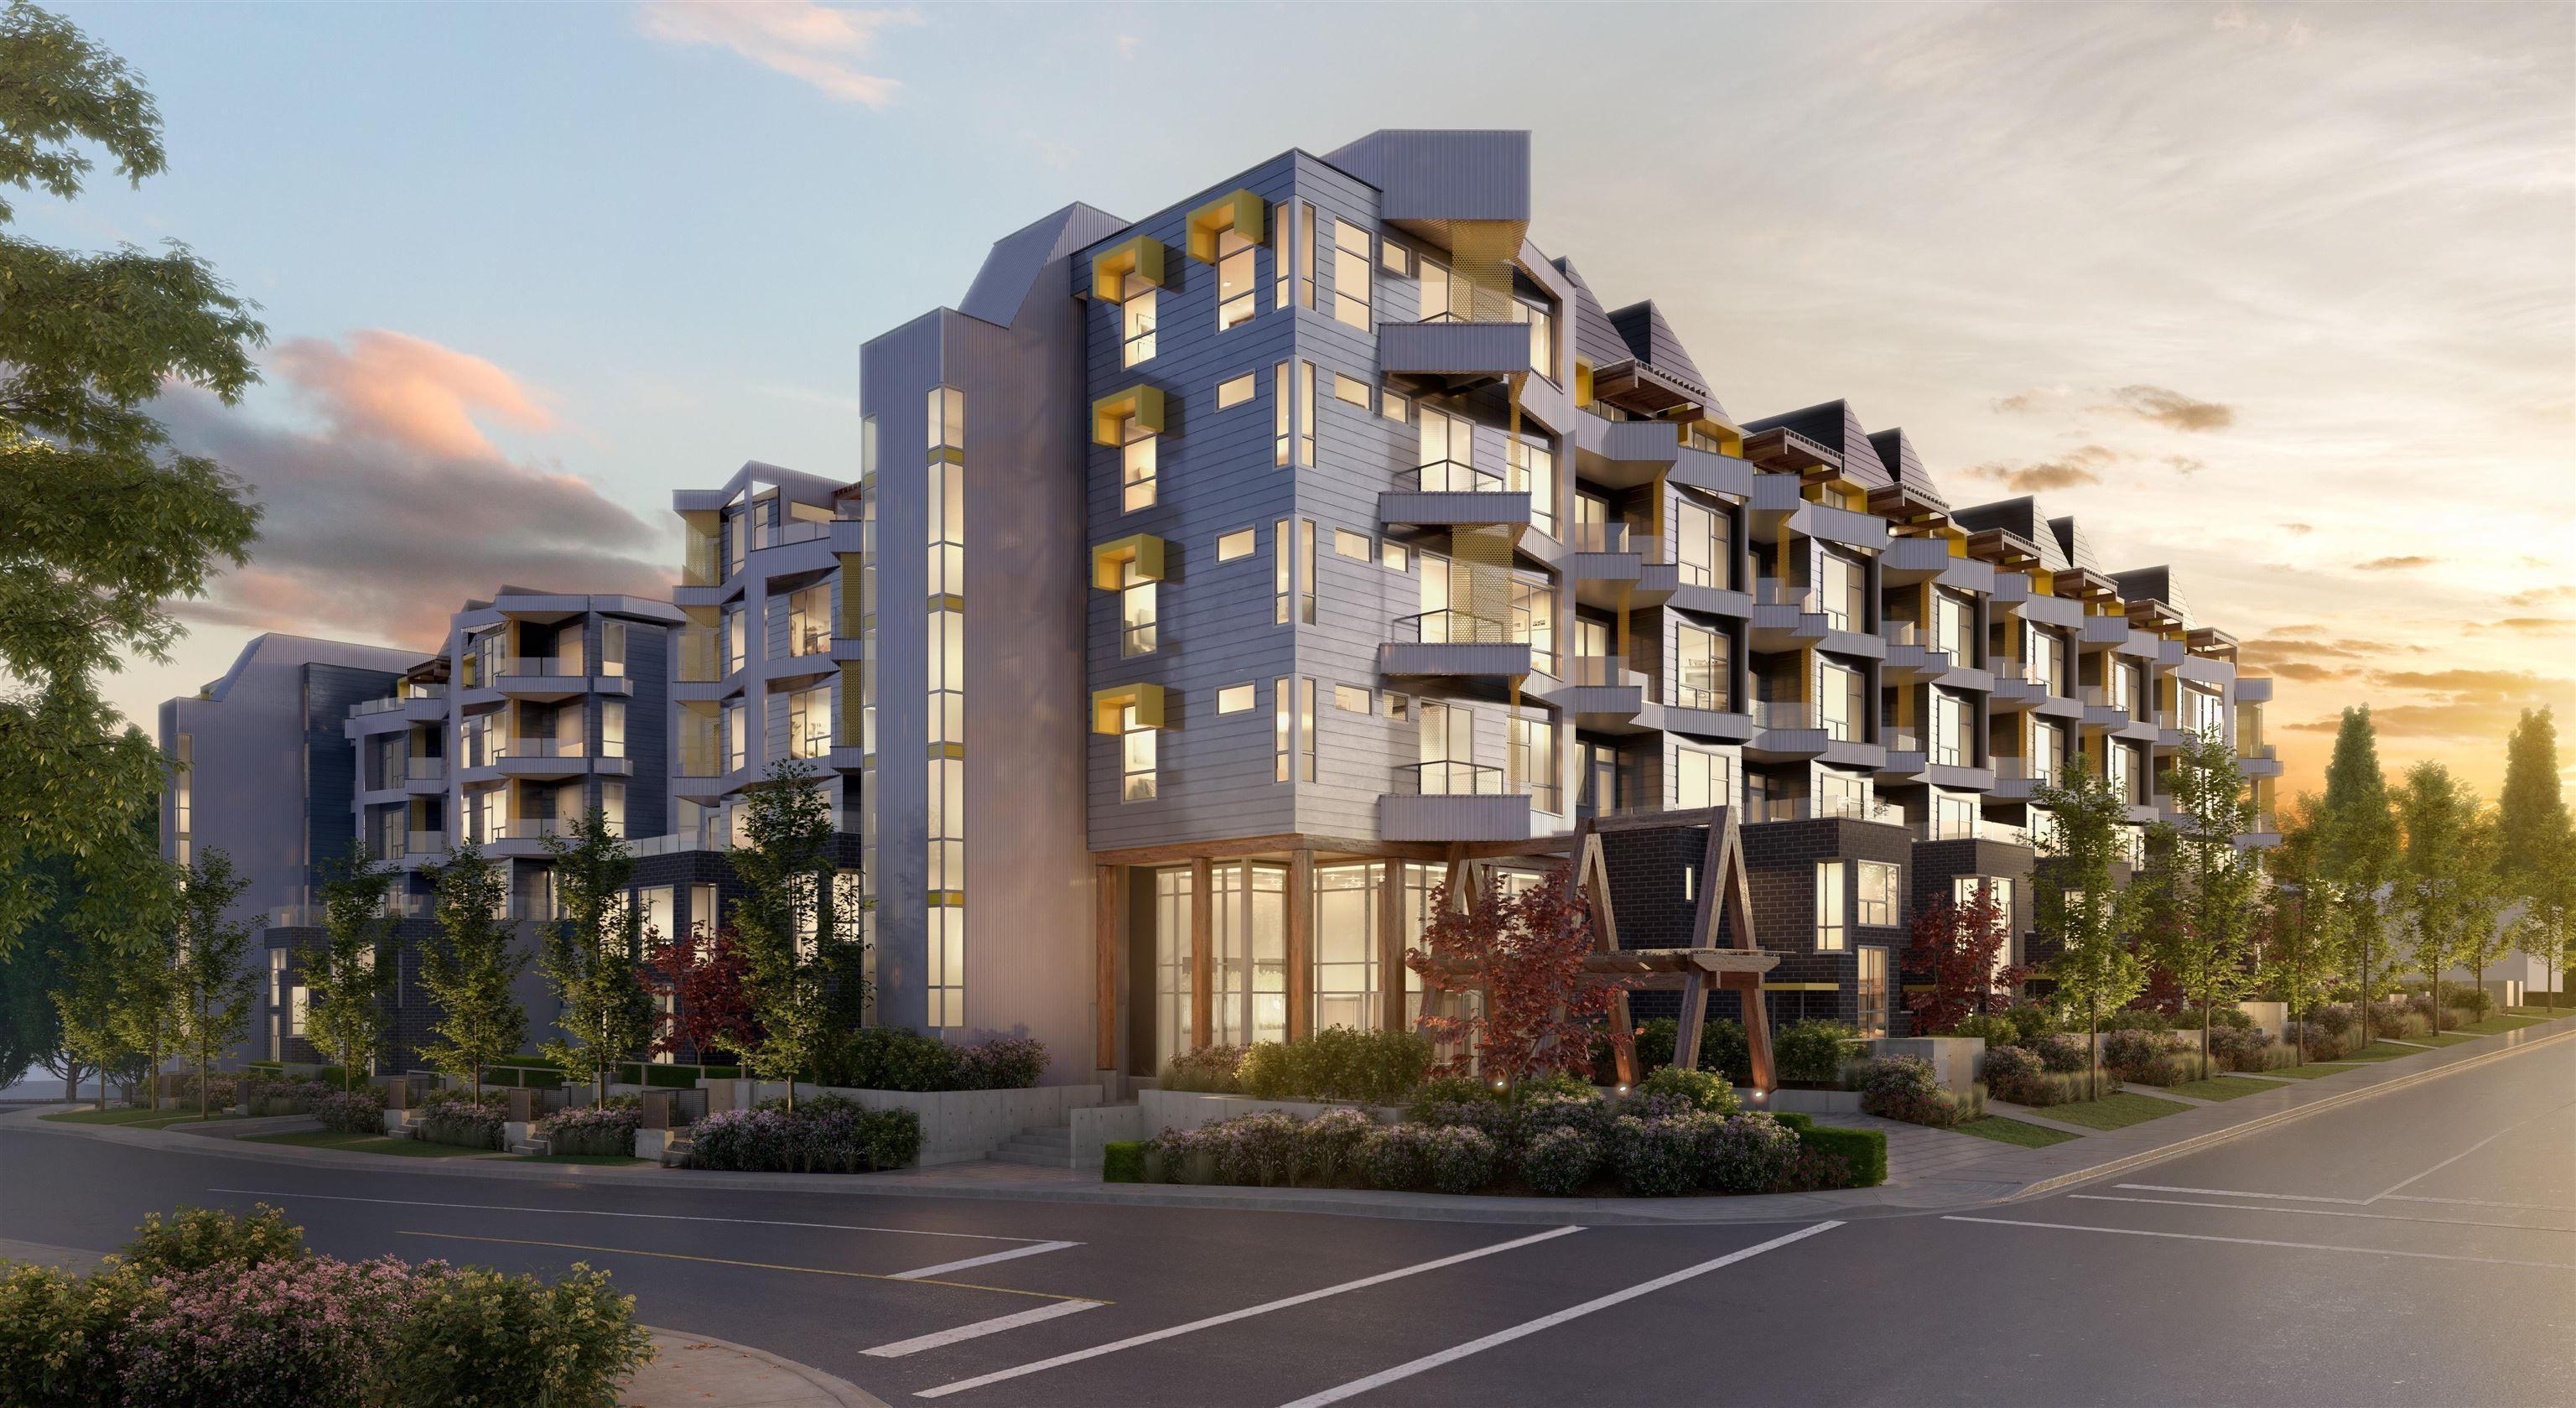 """Main Photo: 601 32838 LANDEAU Place in Abbotsford: Central Abbotsford Condo for sale in """"Court"""" : MLS®# R2625372"""